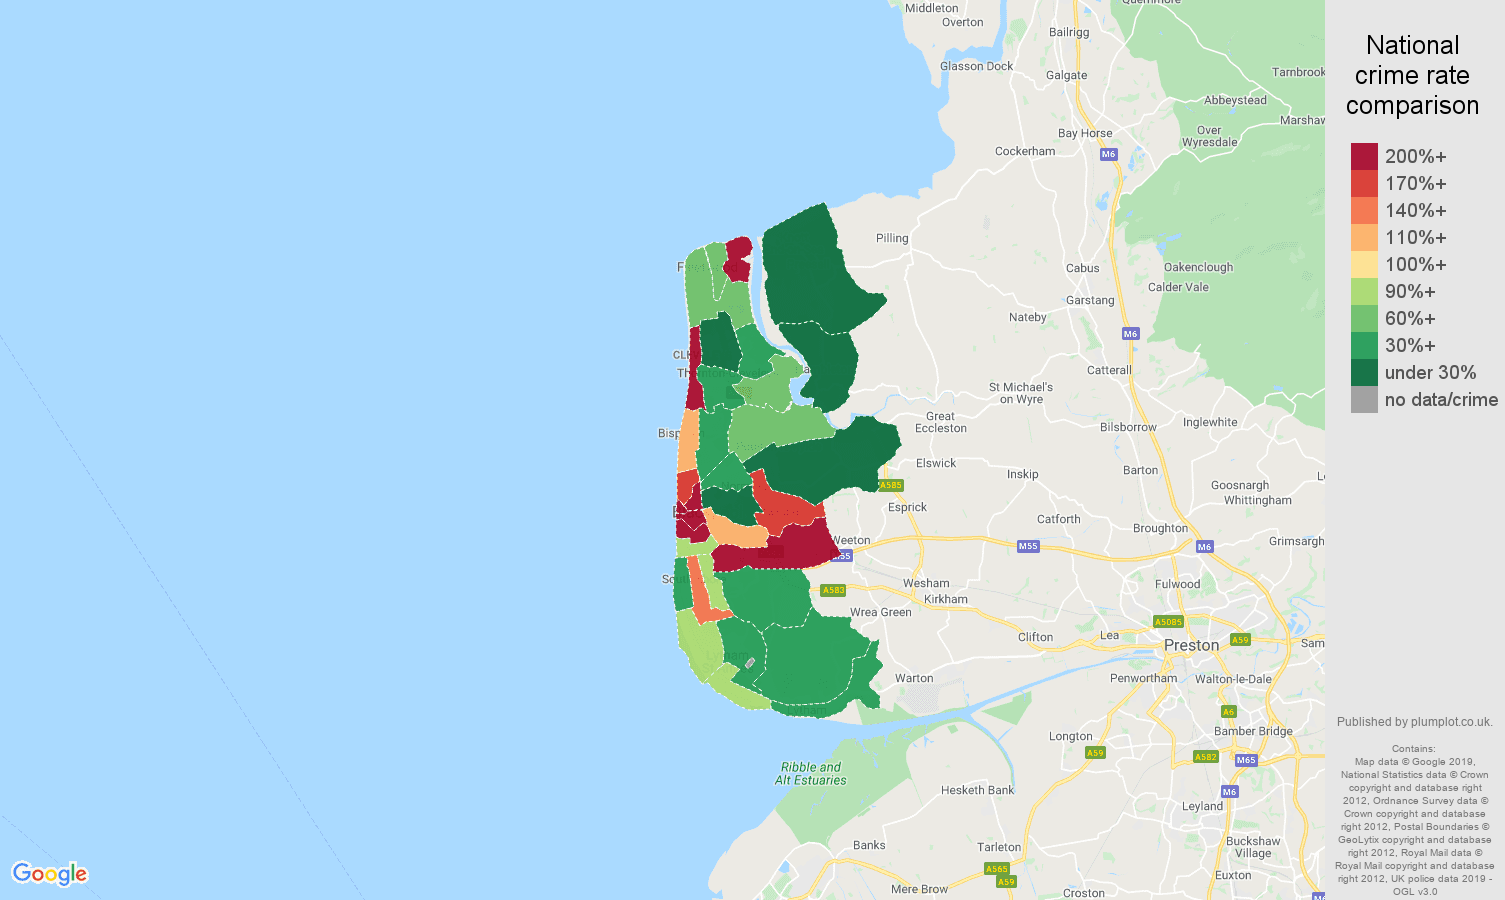 Blackpool shoplifting crime rate comparison map